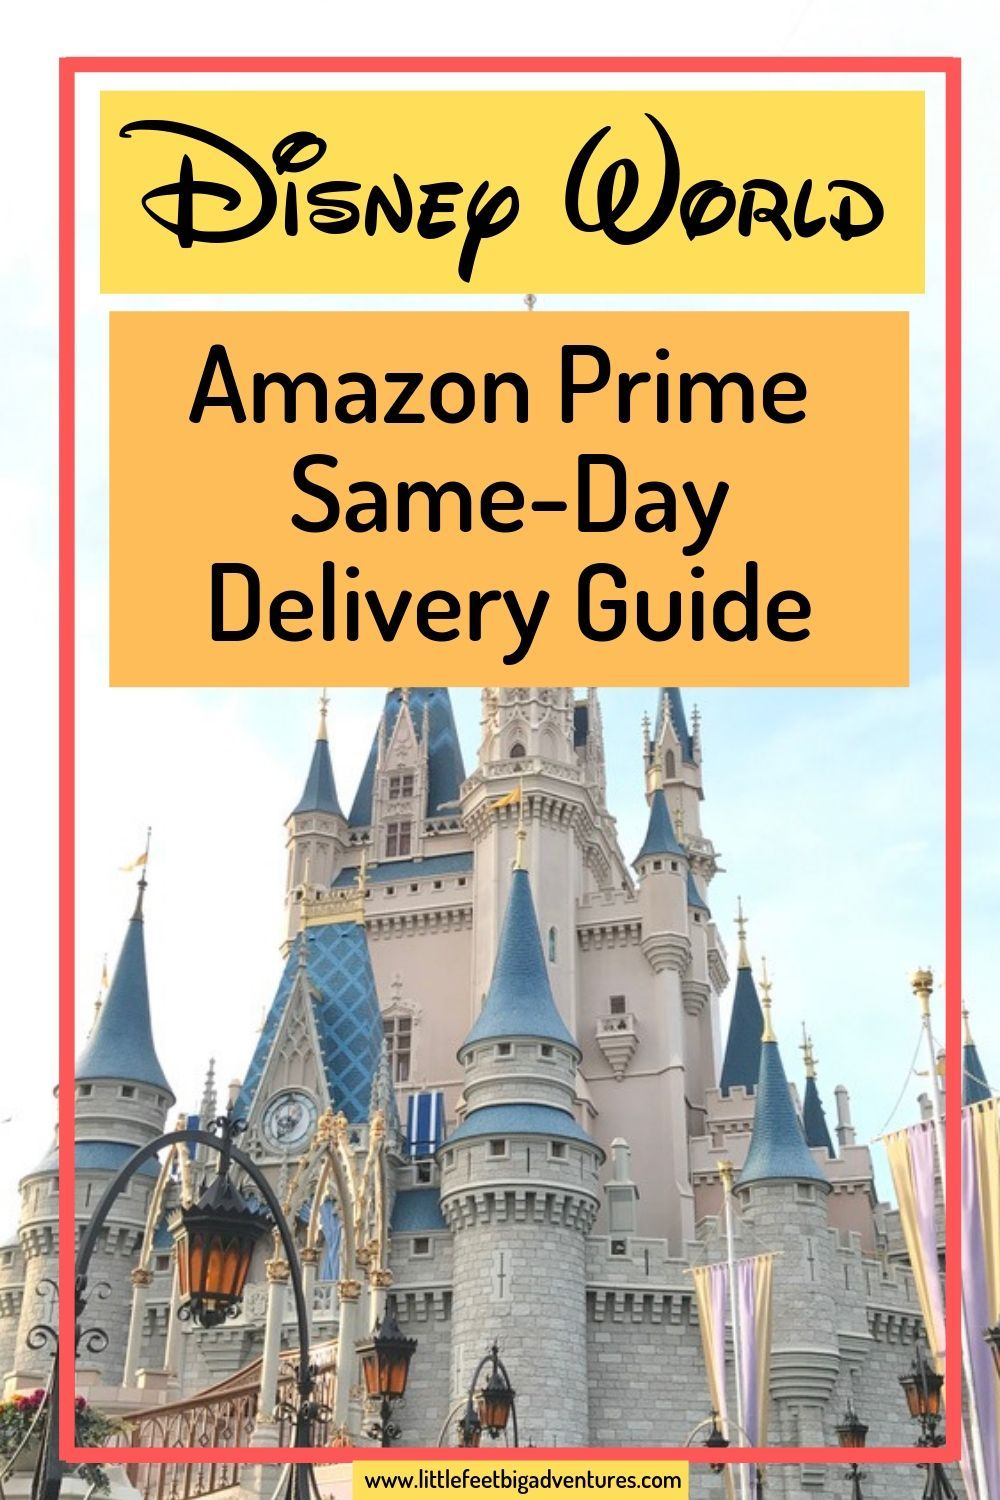 Amazon Prime One Day Delivery Now Available At Disney World Disney World Trip Disney World Walt Disney World Vacations